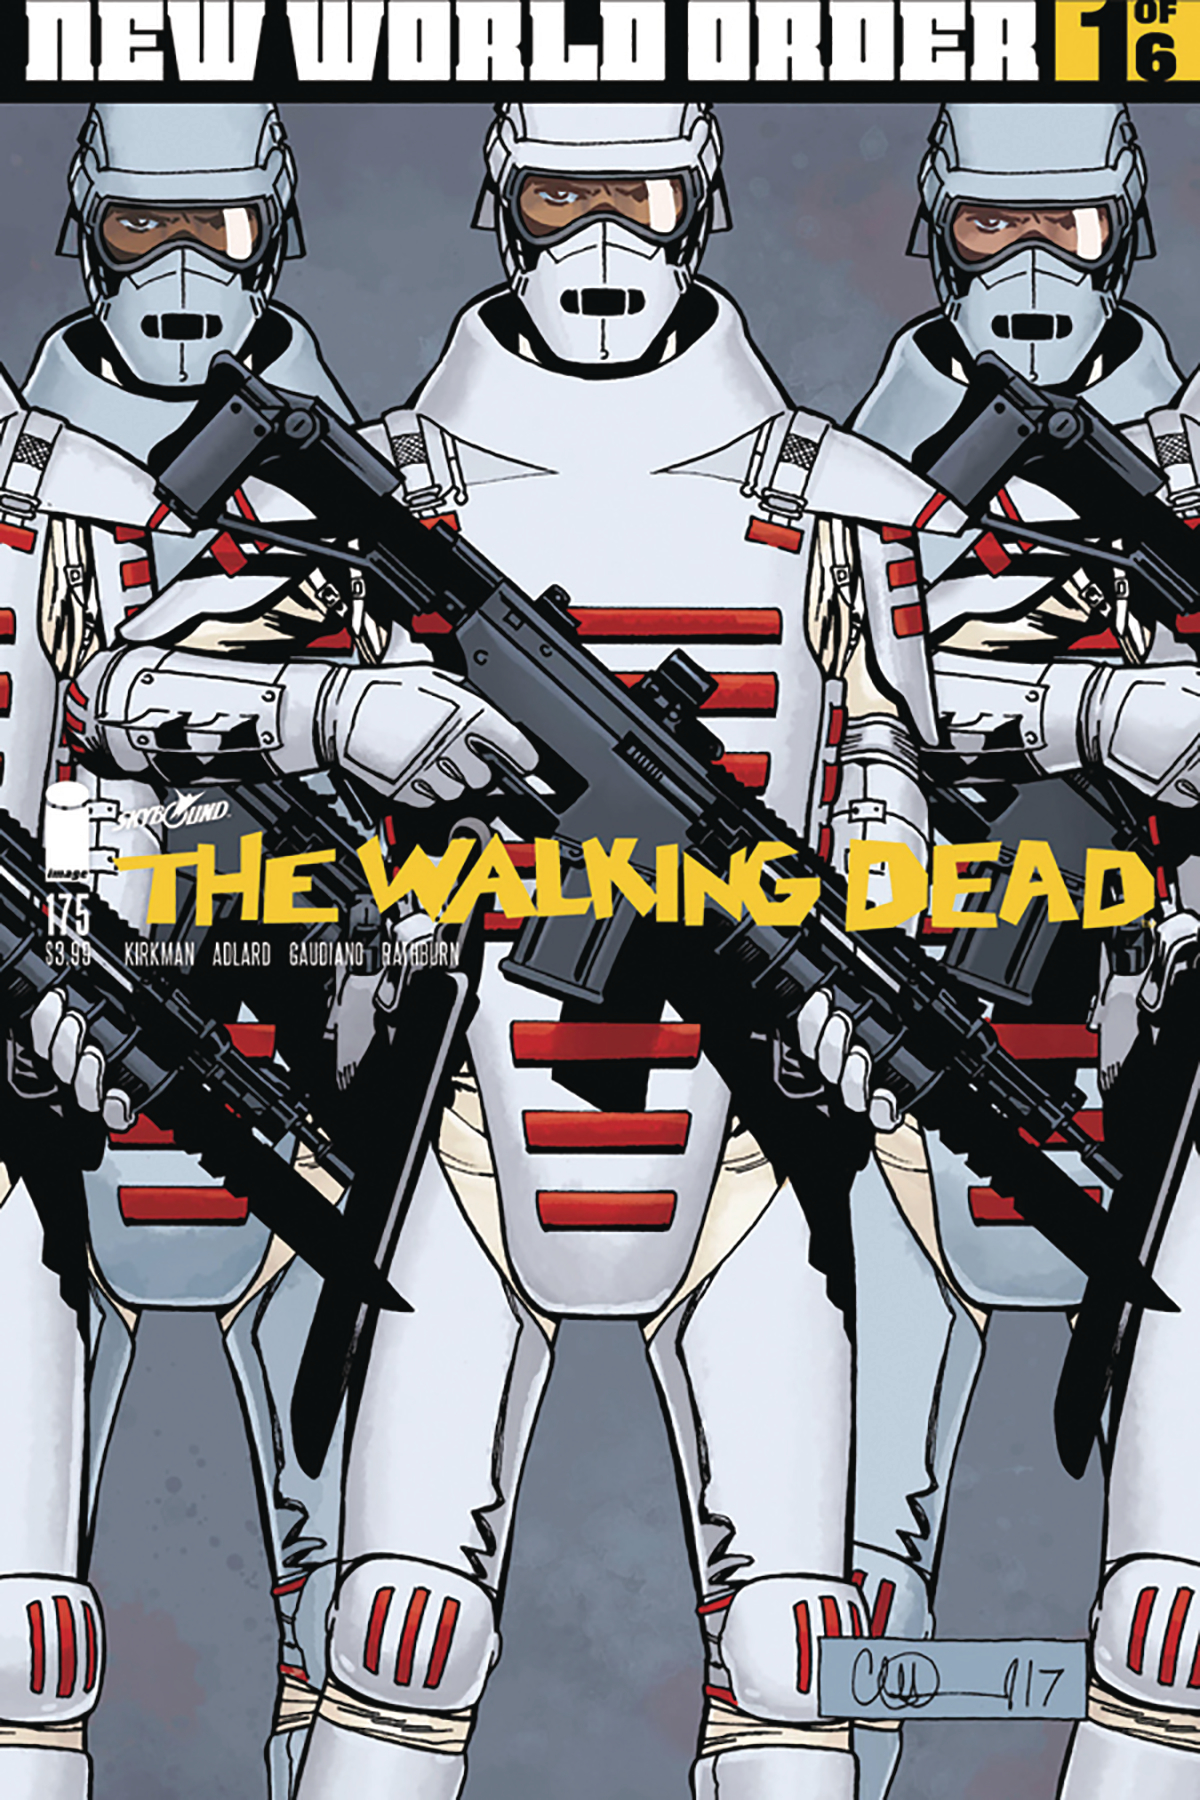 DF WALKING DEAD #175 RED GAUDIANO SGN